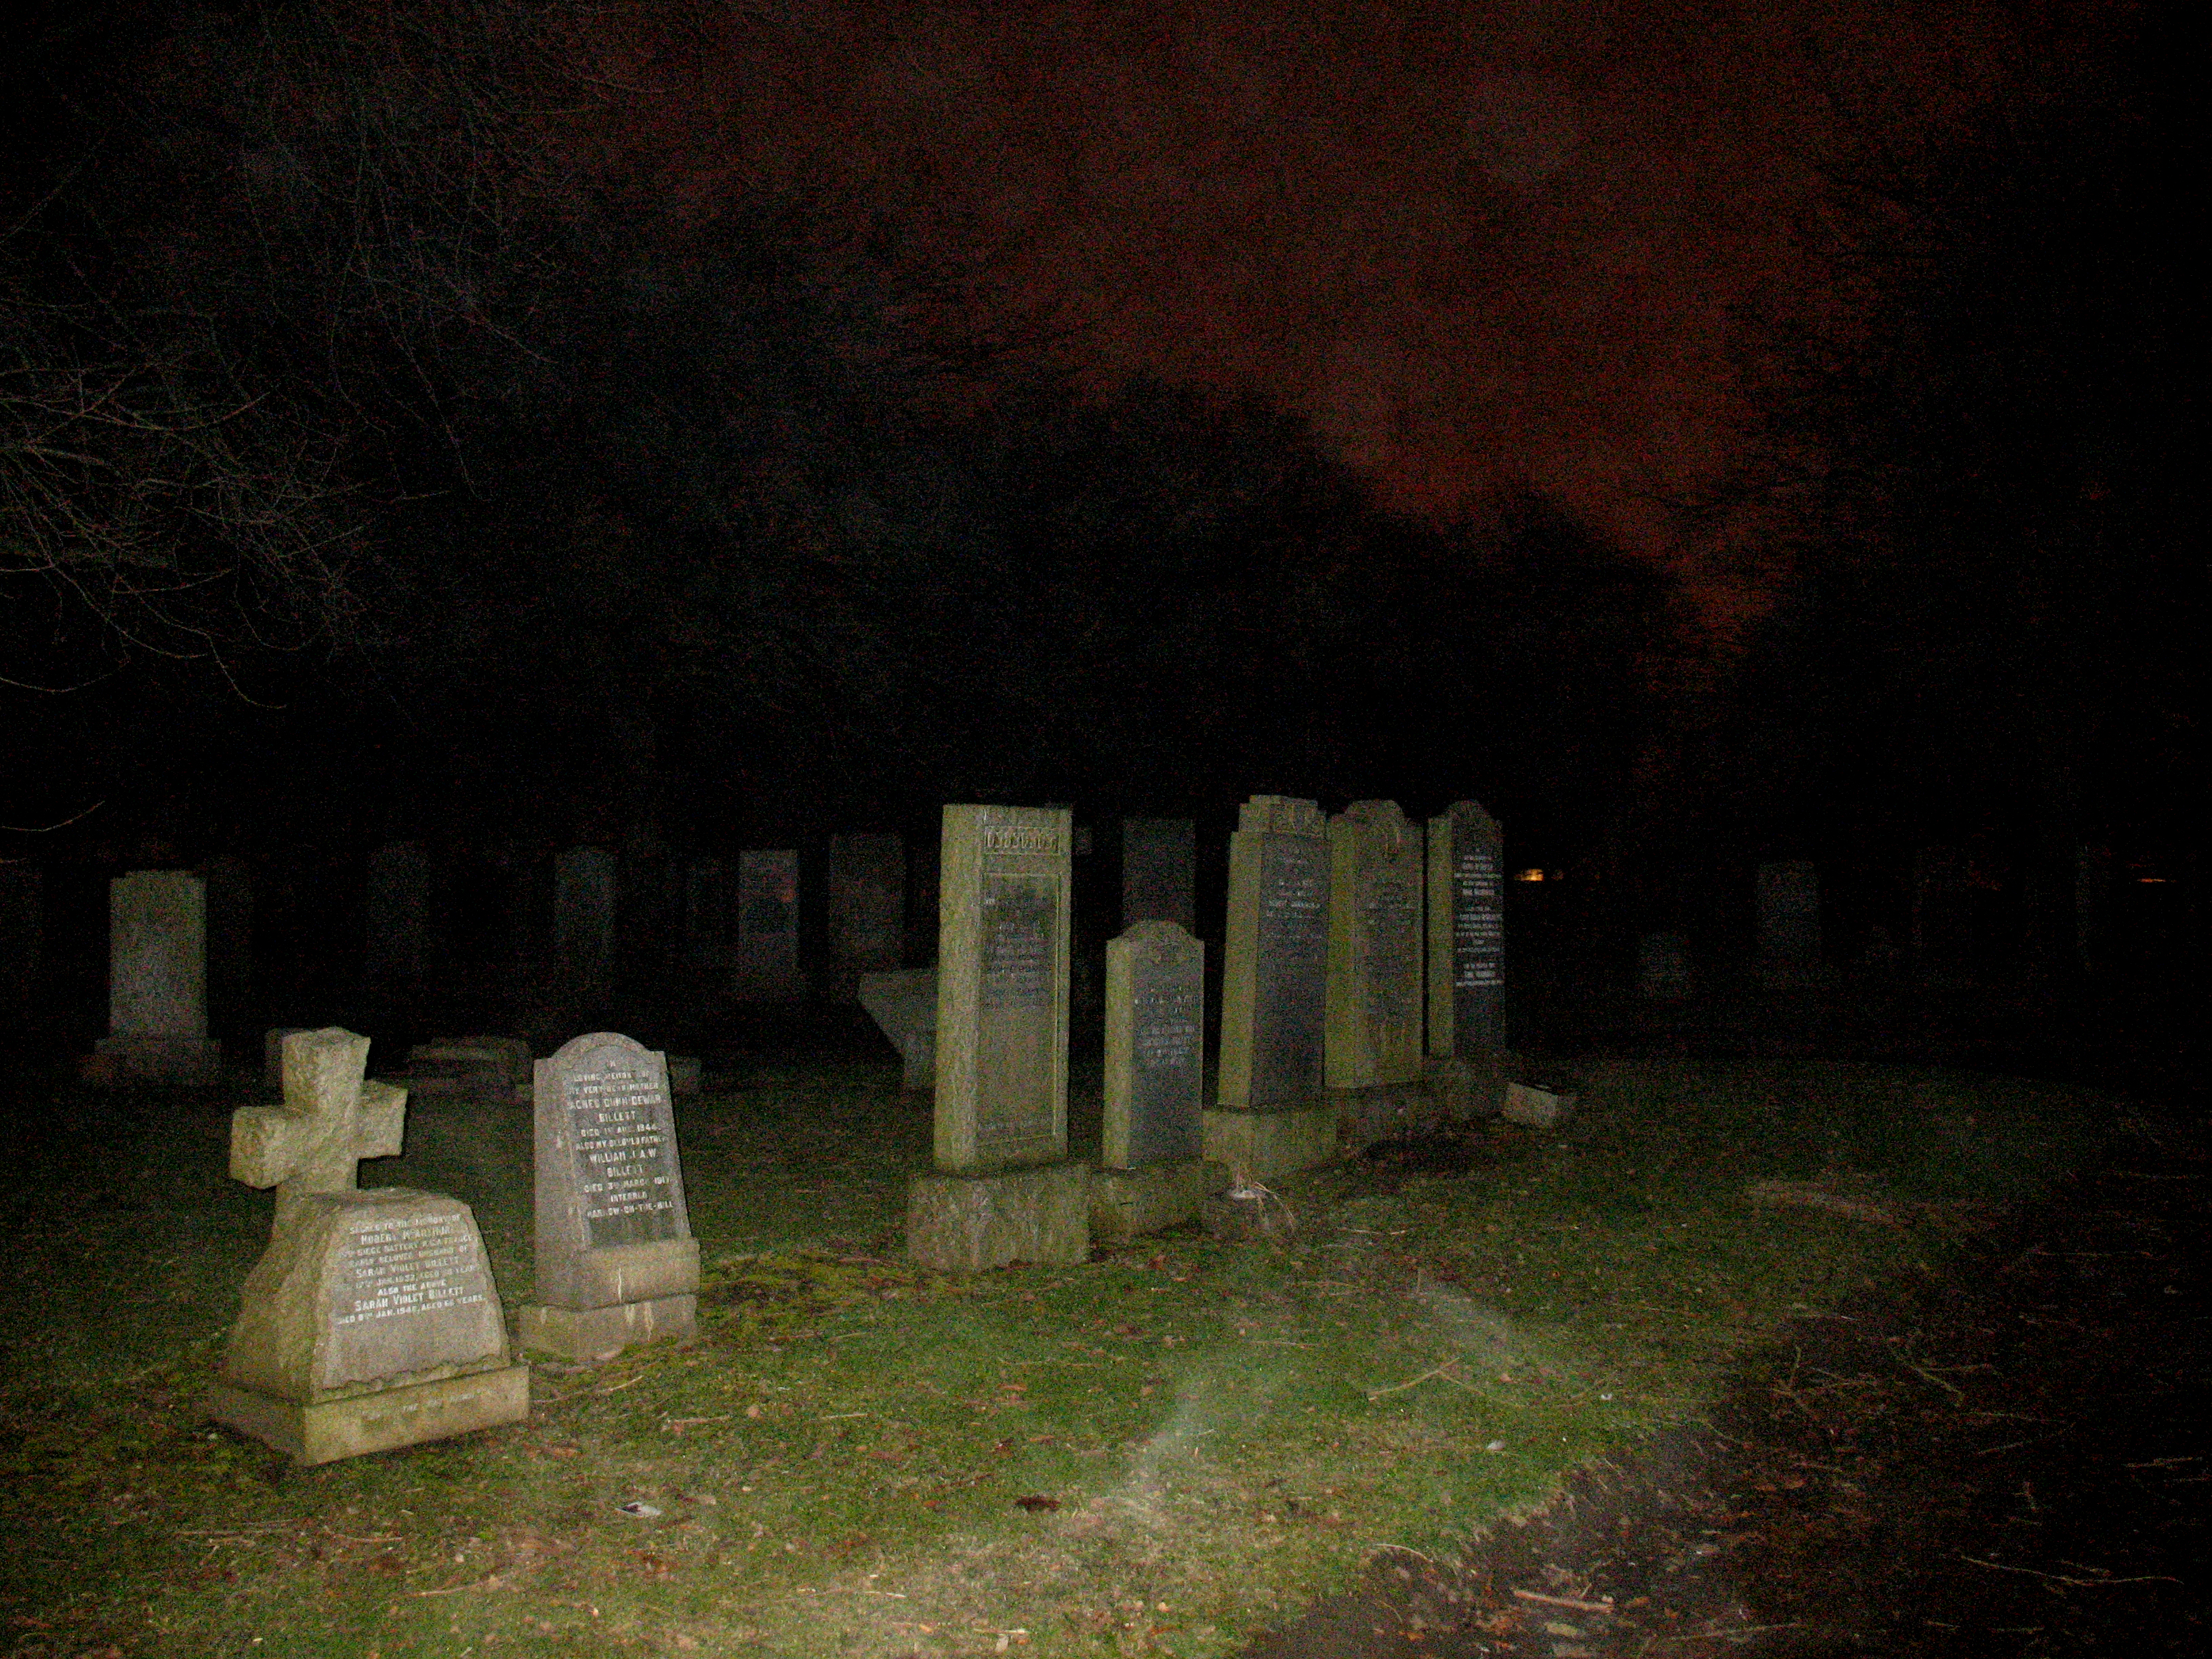 cemetery wallpaper night - photo #11